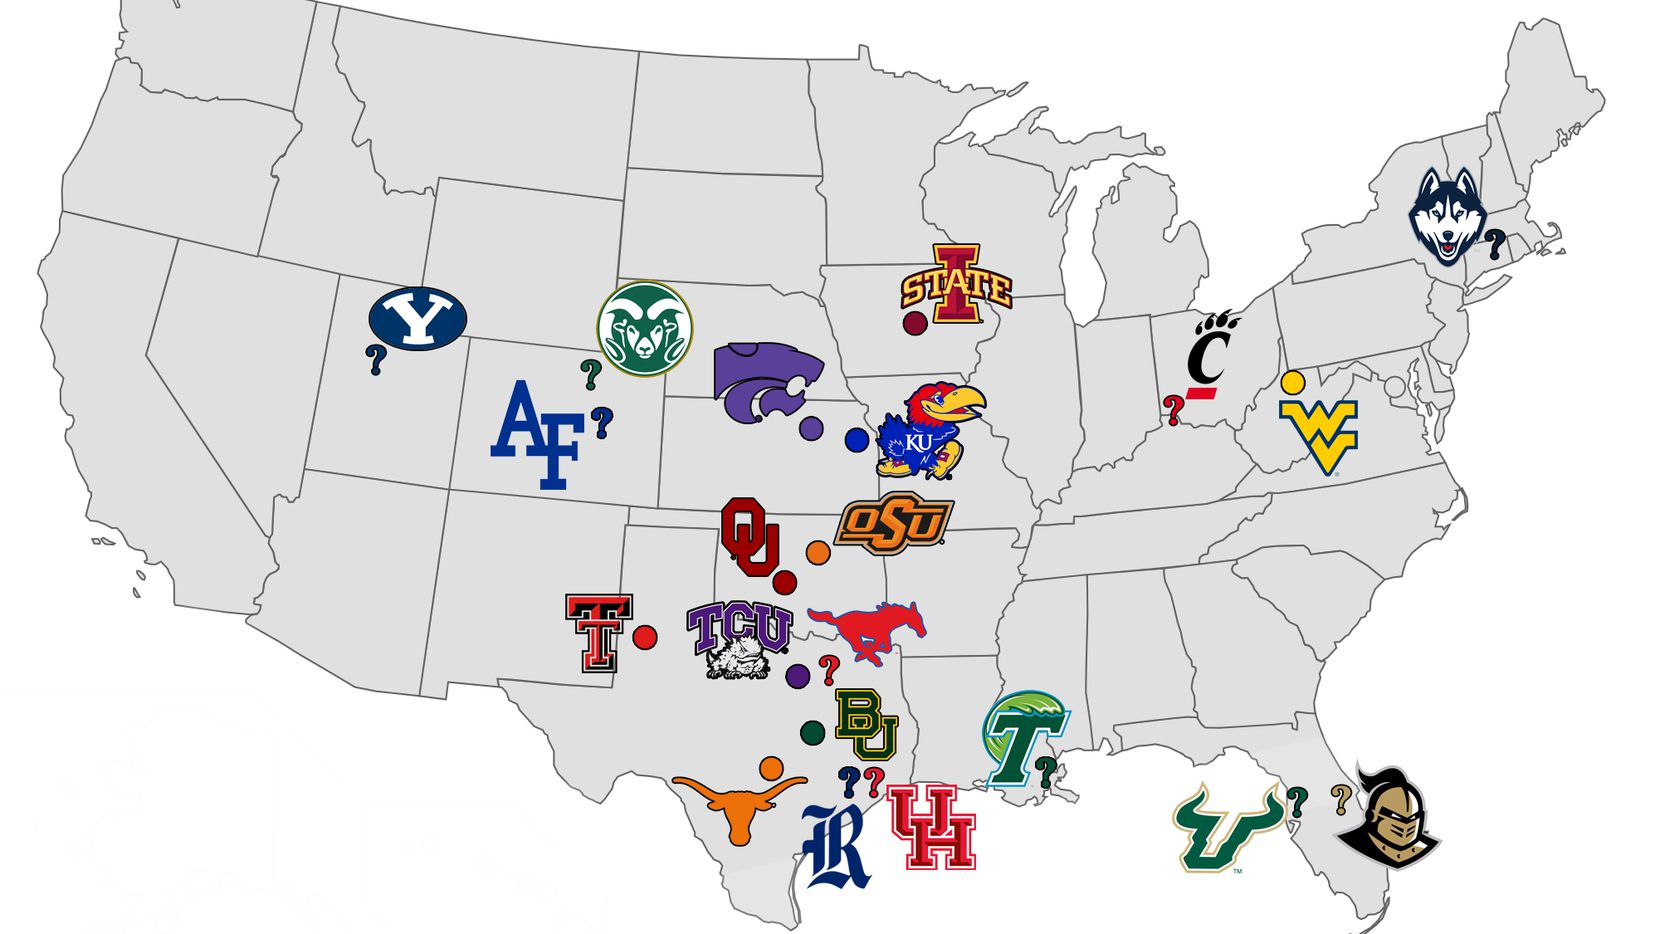 If the Big 12 does expand, which schools could join the conference?